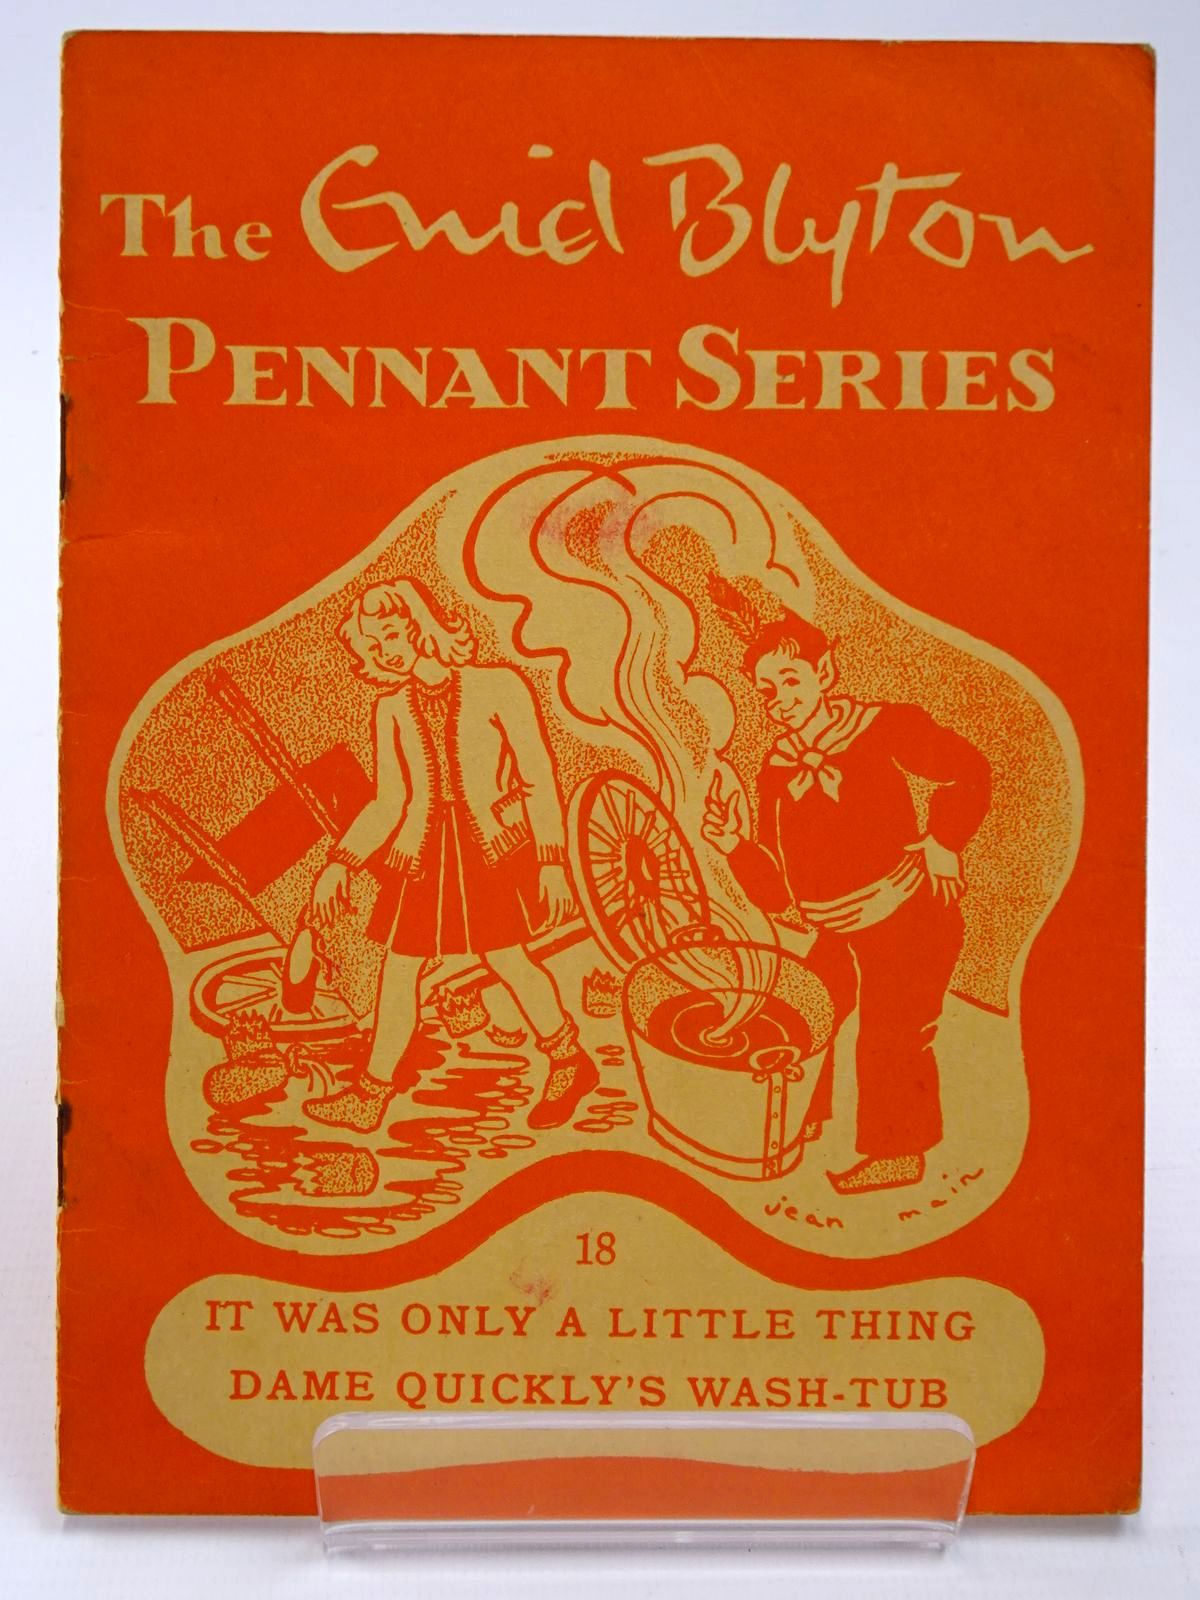 Photo of THE ENID BLYTON PENNANT SERIES No. 18 IT WAS ONLY A LITTLE THING / DAME QUICKLY'S WASH-TUB written by Blyton, Enid illustrated by Soper, Eileen Main, Jean published by Macmillan & Co. Ltd. (STOCK CODE: 2130527)  for sale by Stella & Rose's Books